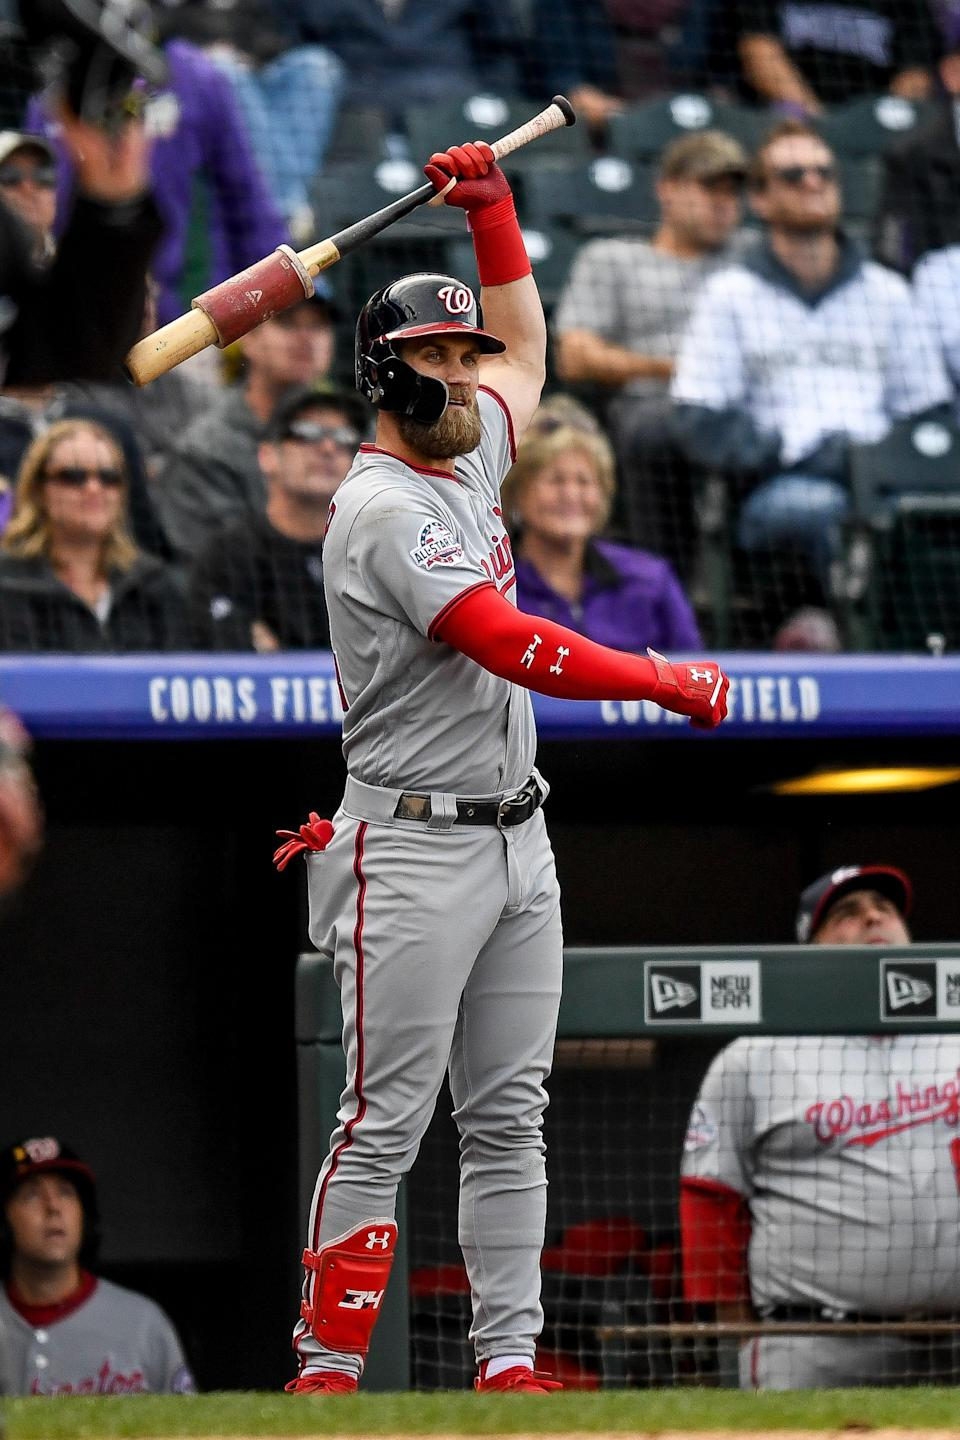 DENVER, CO – SEPTEMBER 30: Bryce Harper #34 of the Washington Nationals warms up in the on deck circle before batting against the Colorado Rockies in the ninth inning of a game at Coors Field on September 30, 2018 in Denver, Colorado. (Photo by Dustin Bradford/Getty Images)